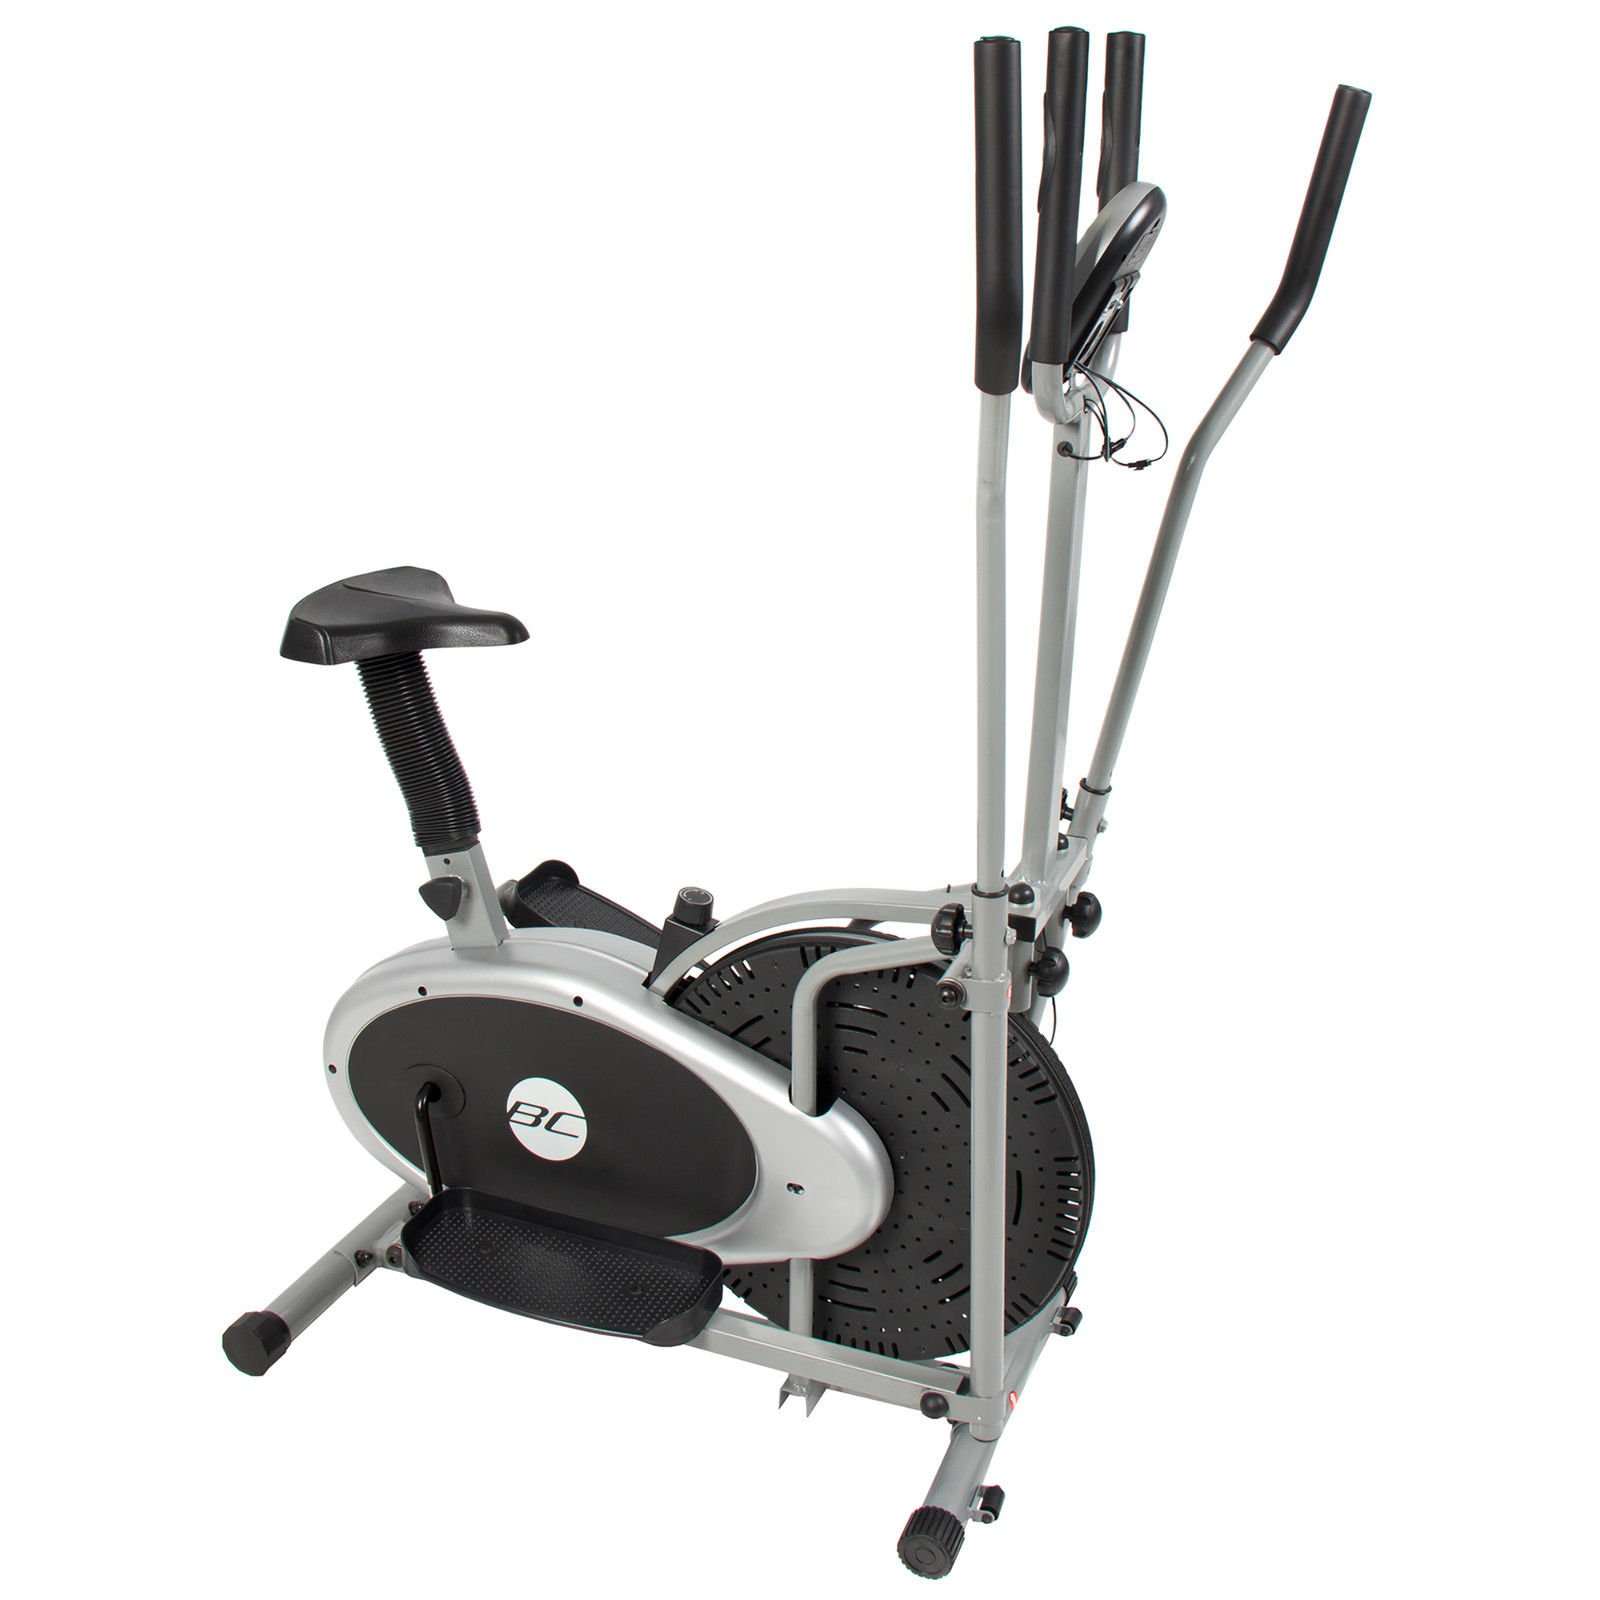 Alitop Elliptical Bike 2 IN 1 Cross Trainer Exercise Fitness Machine by Alitop (Image #1)